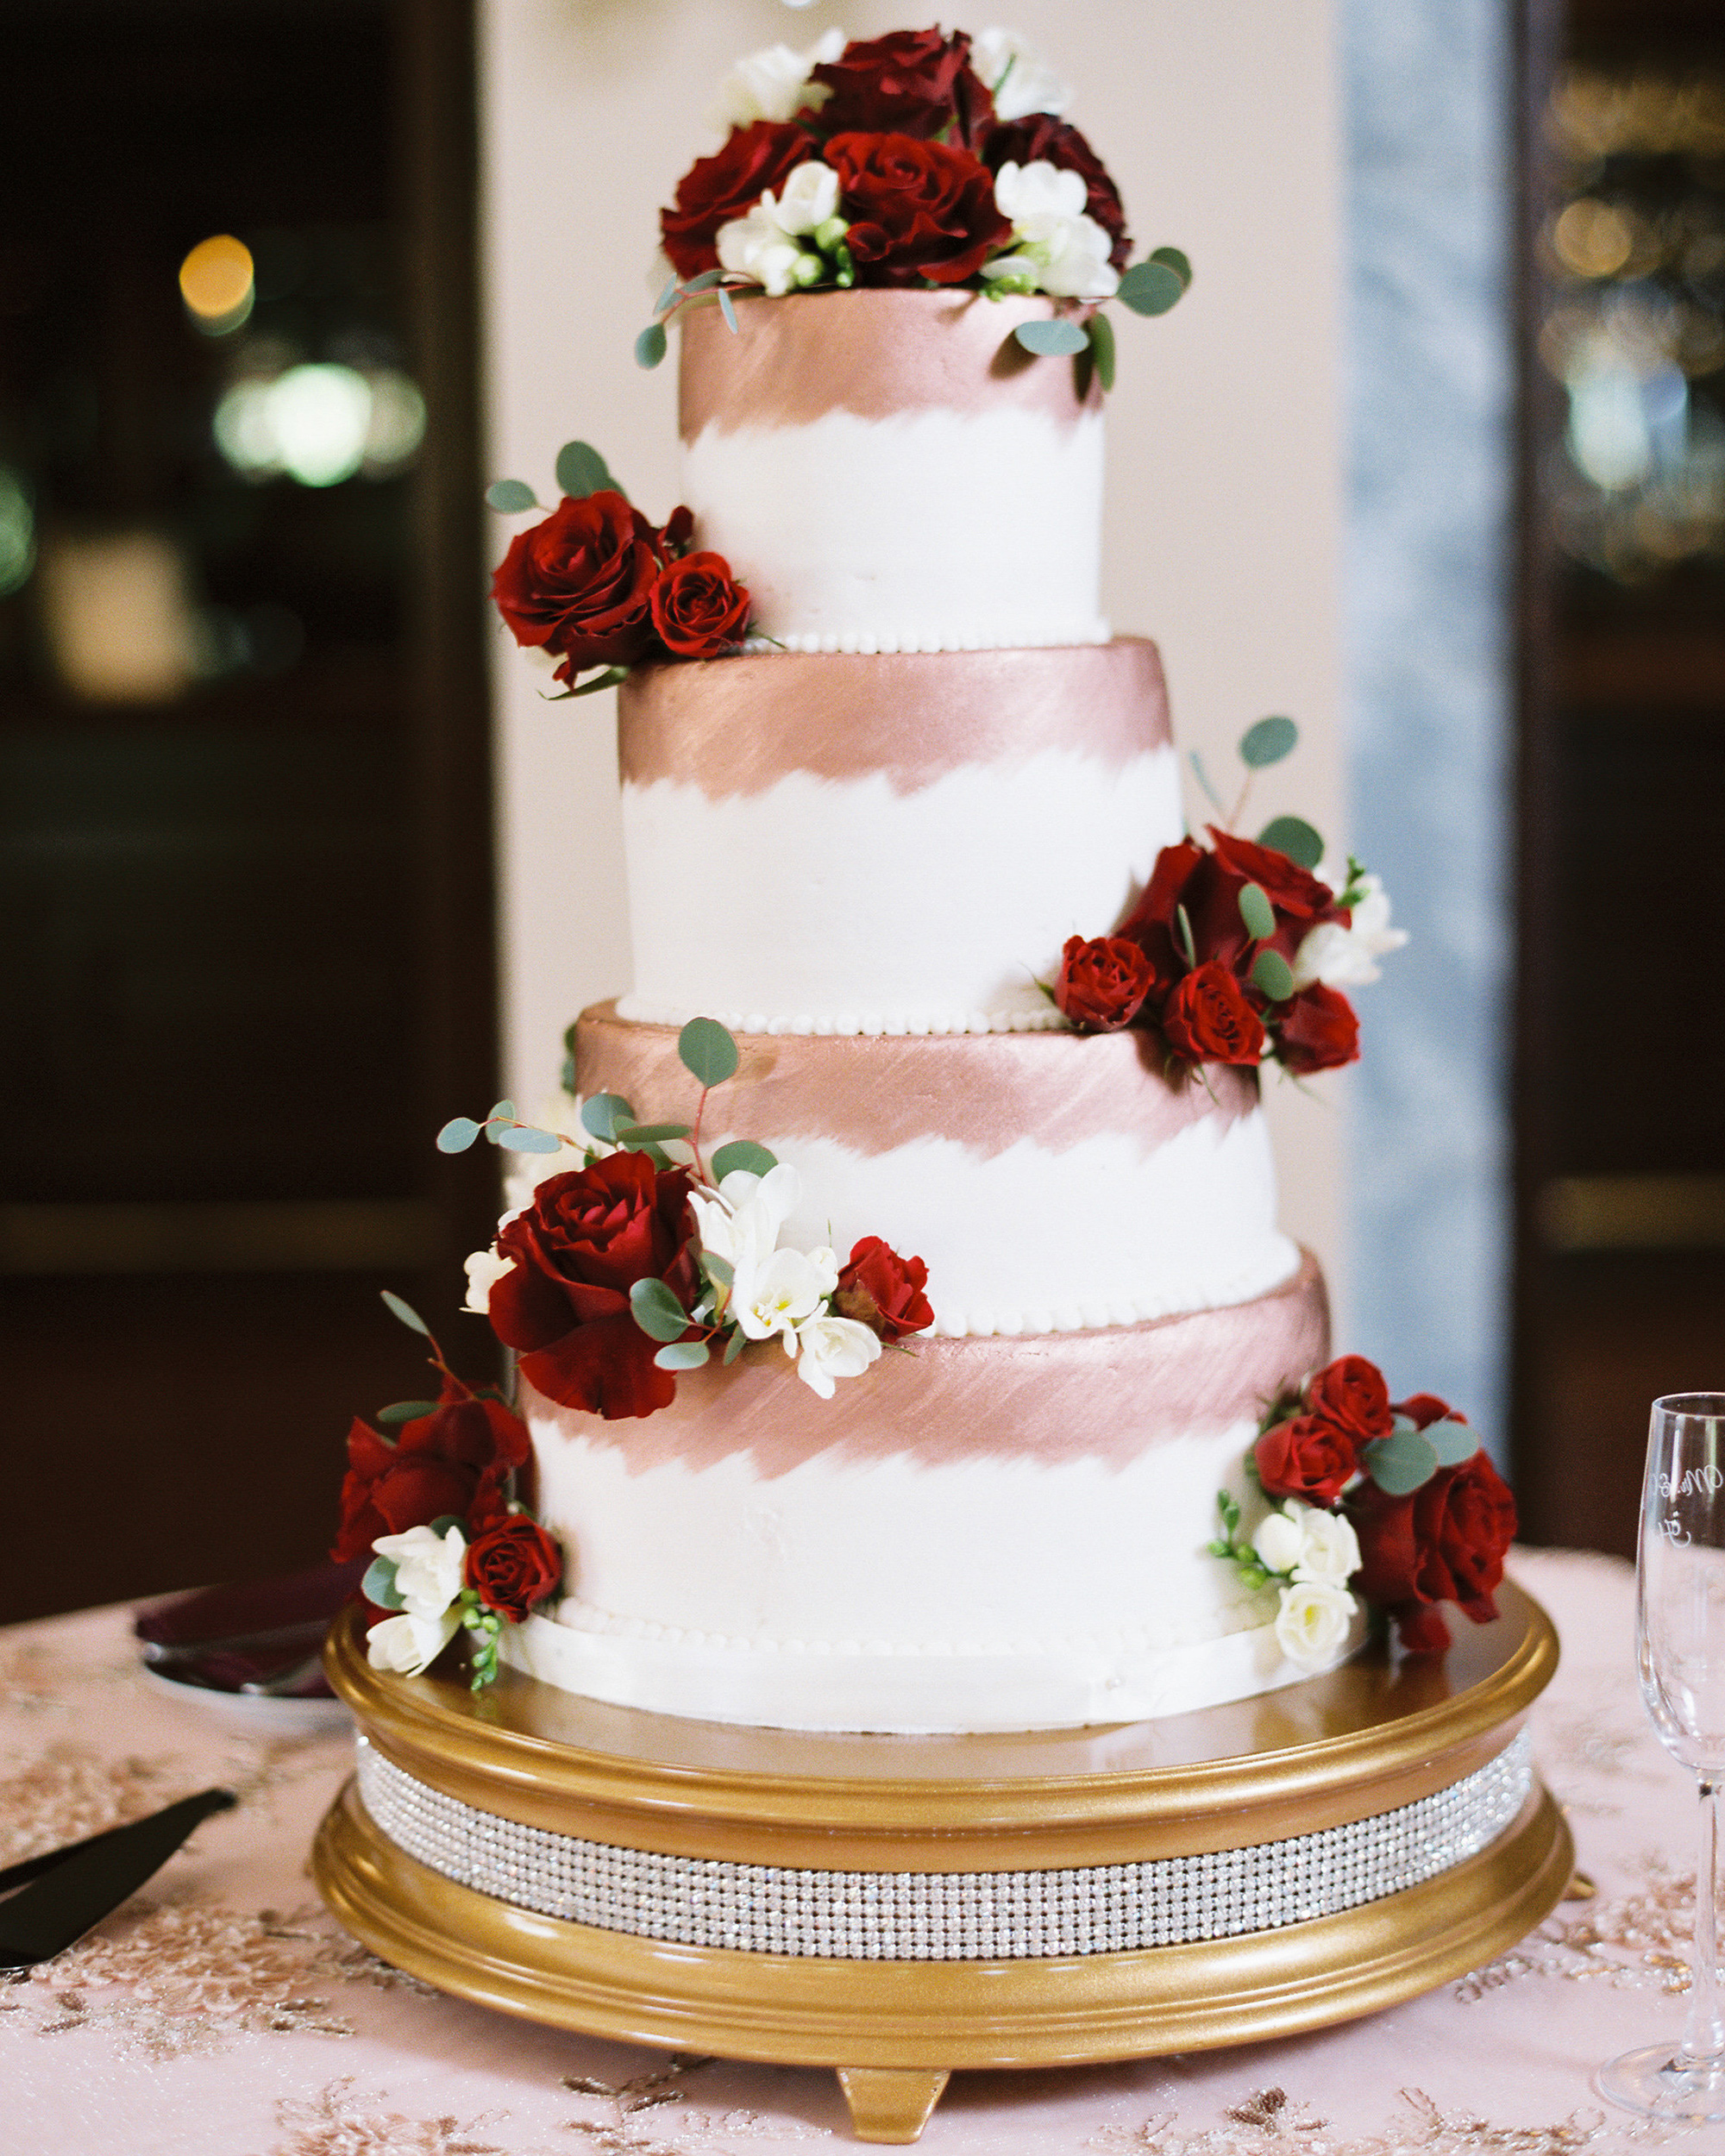 niara allen wedding cake gold with red roses